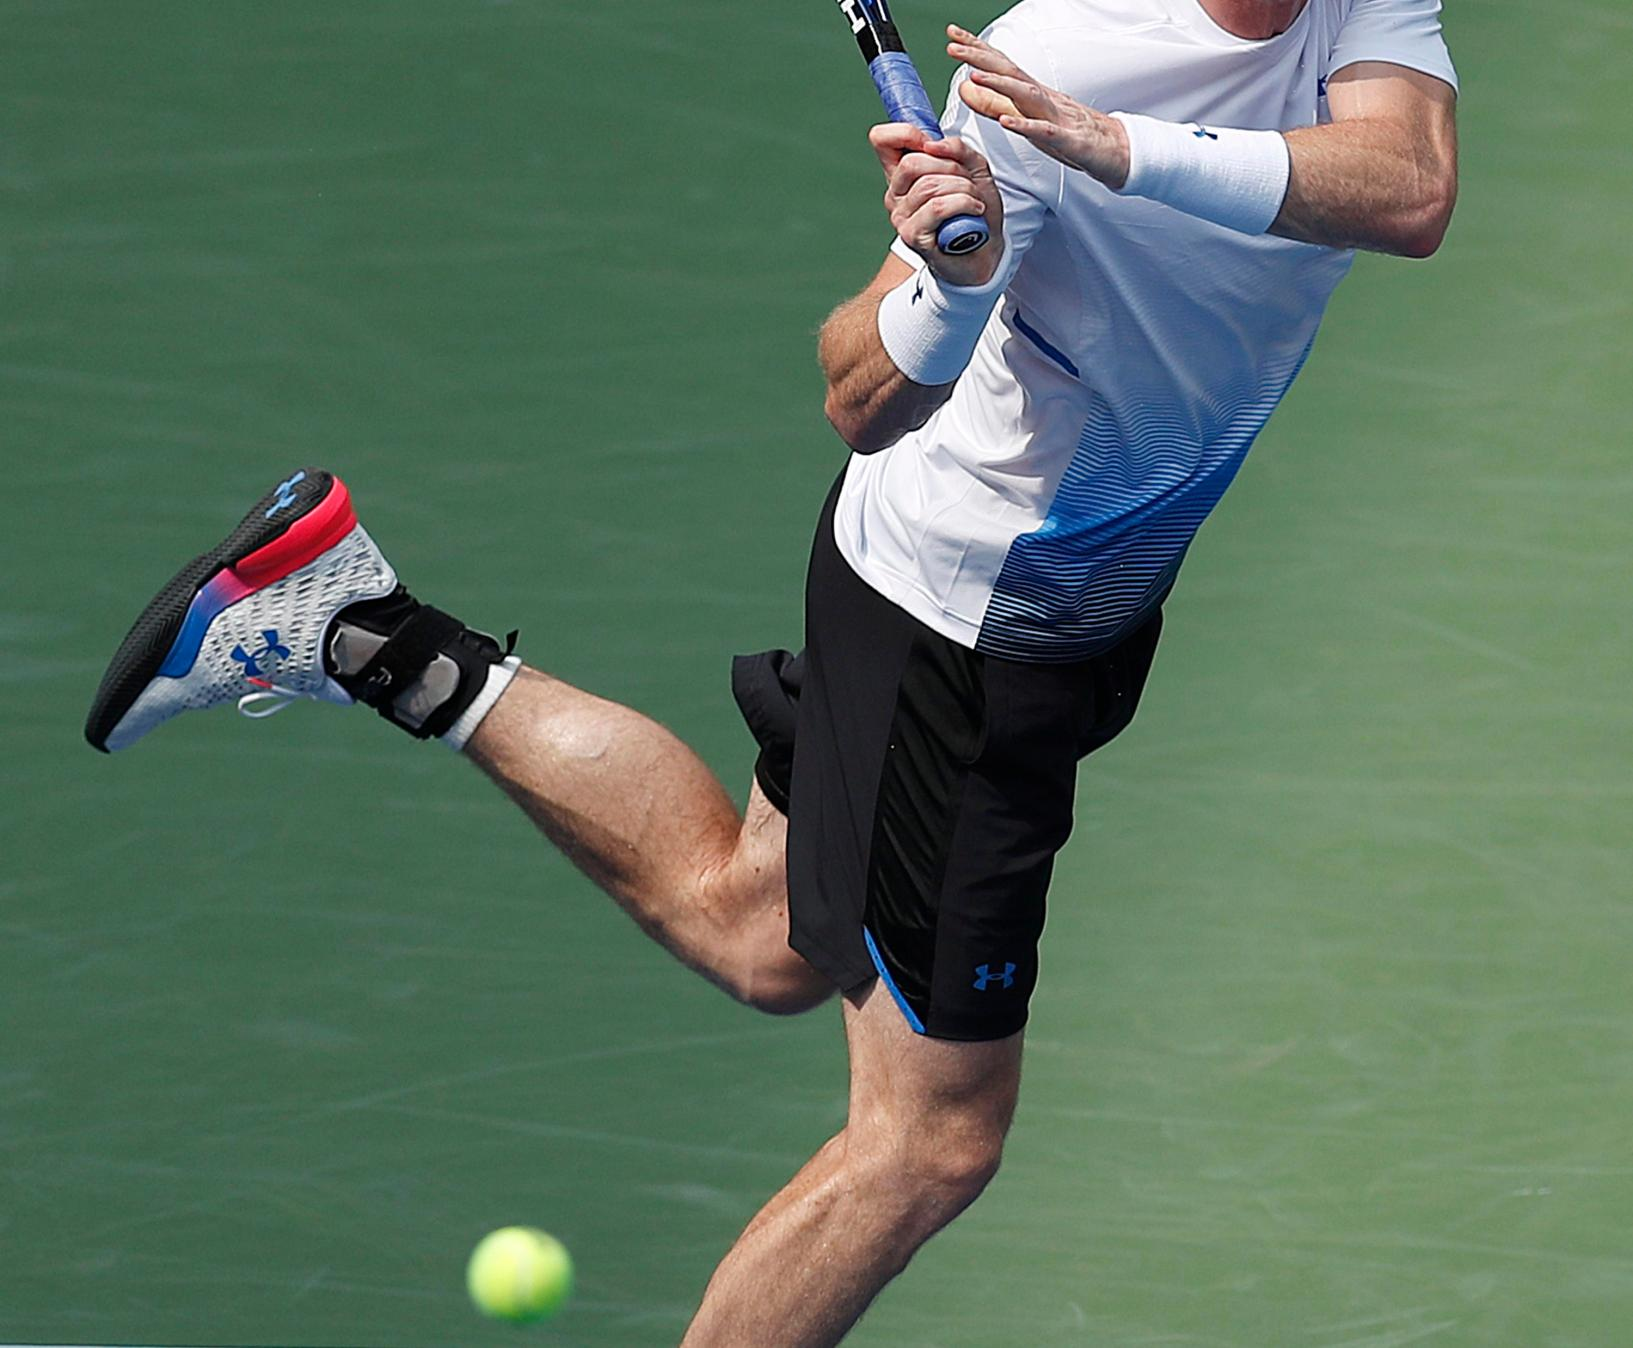 Andy Murray looked quite sharp as he battled to a four-set win over Australian big-server James Duckworth at Flushing Meadows